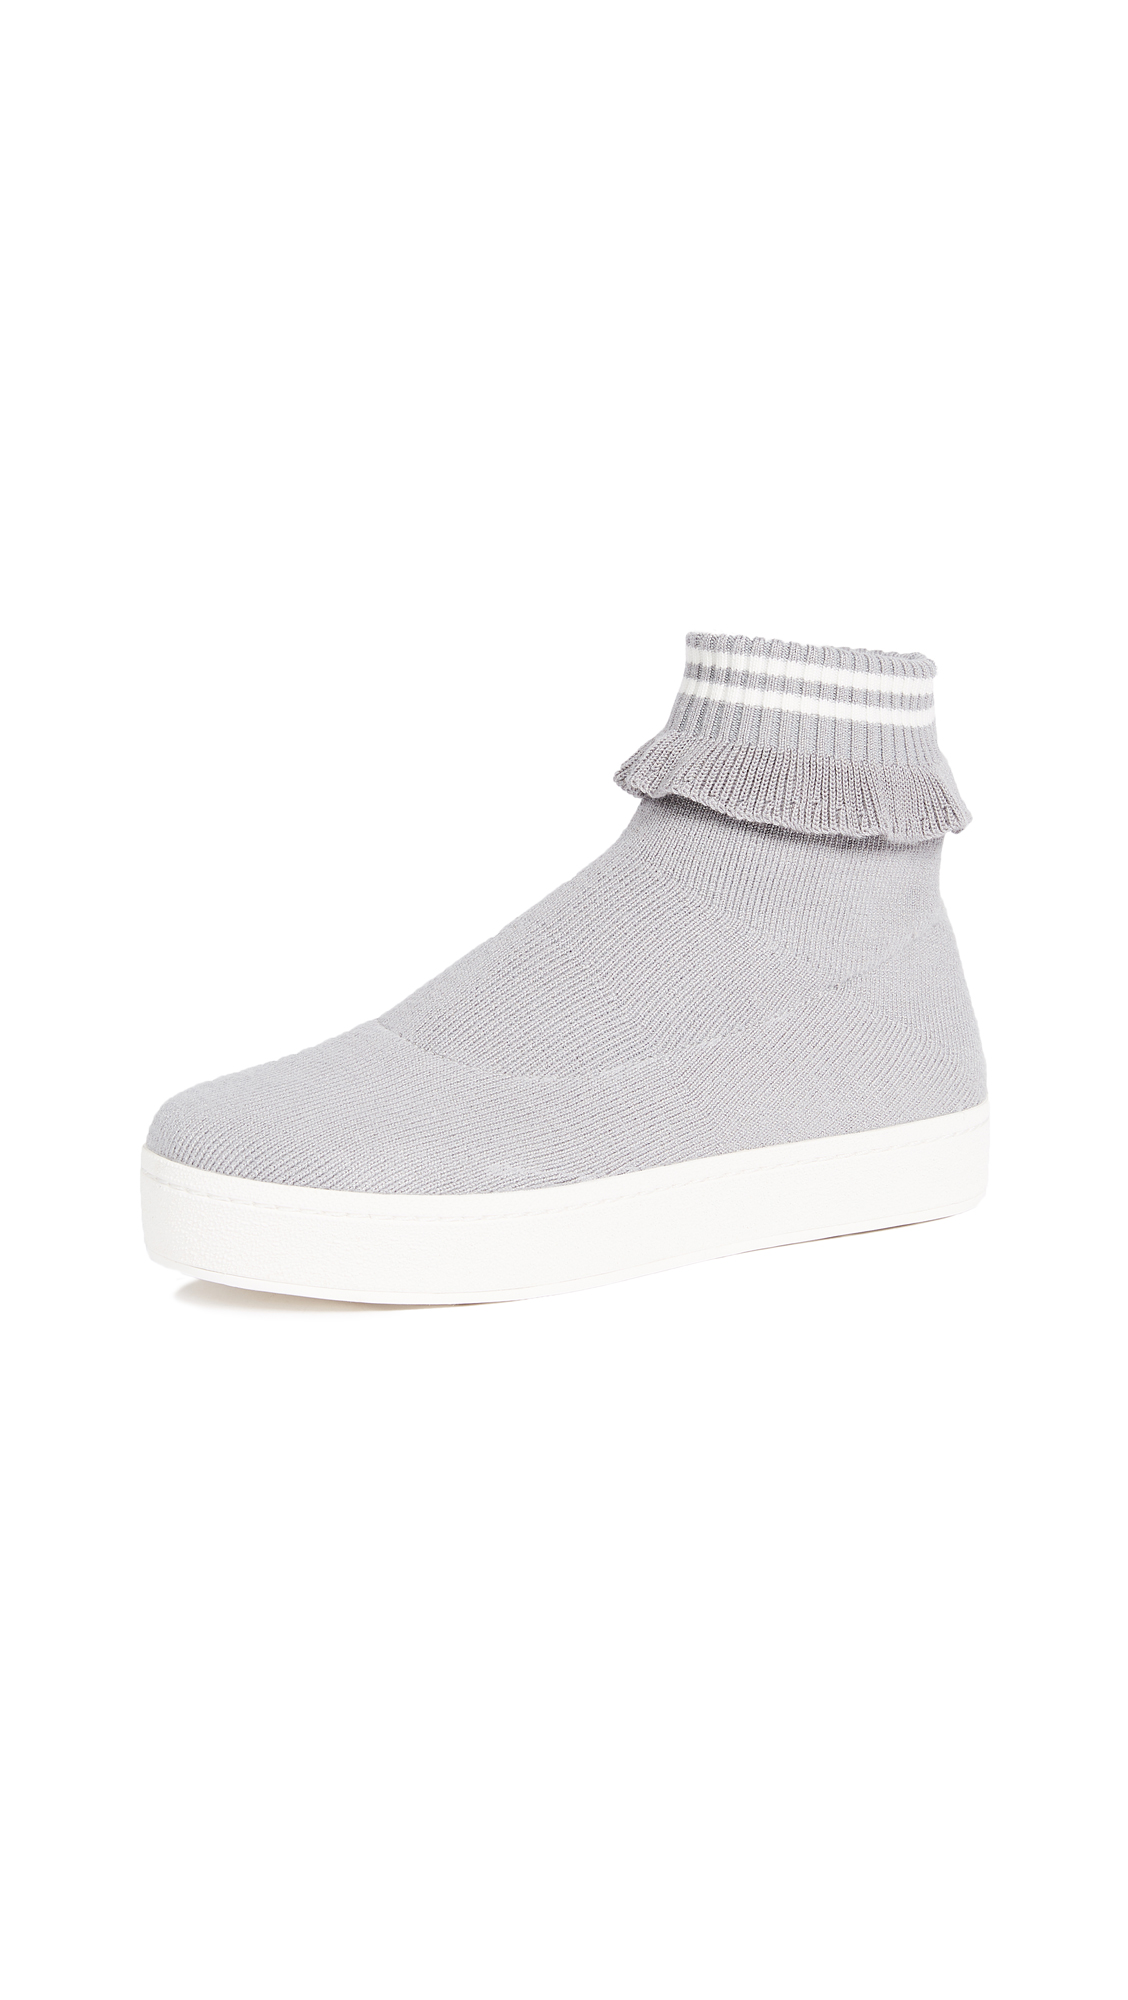 Opening Ceremony Bobby Slip On Sneakers In Heather Grey